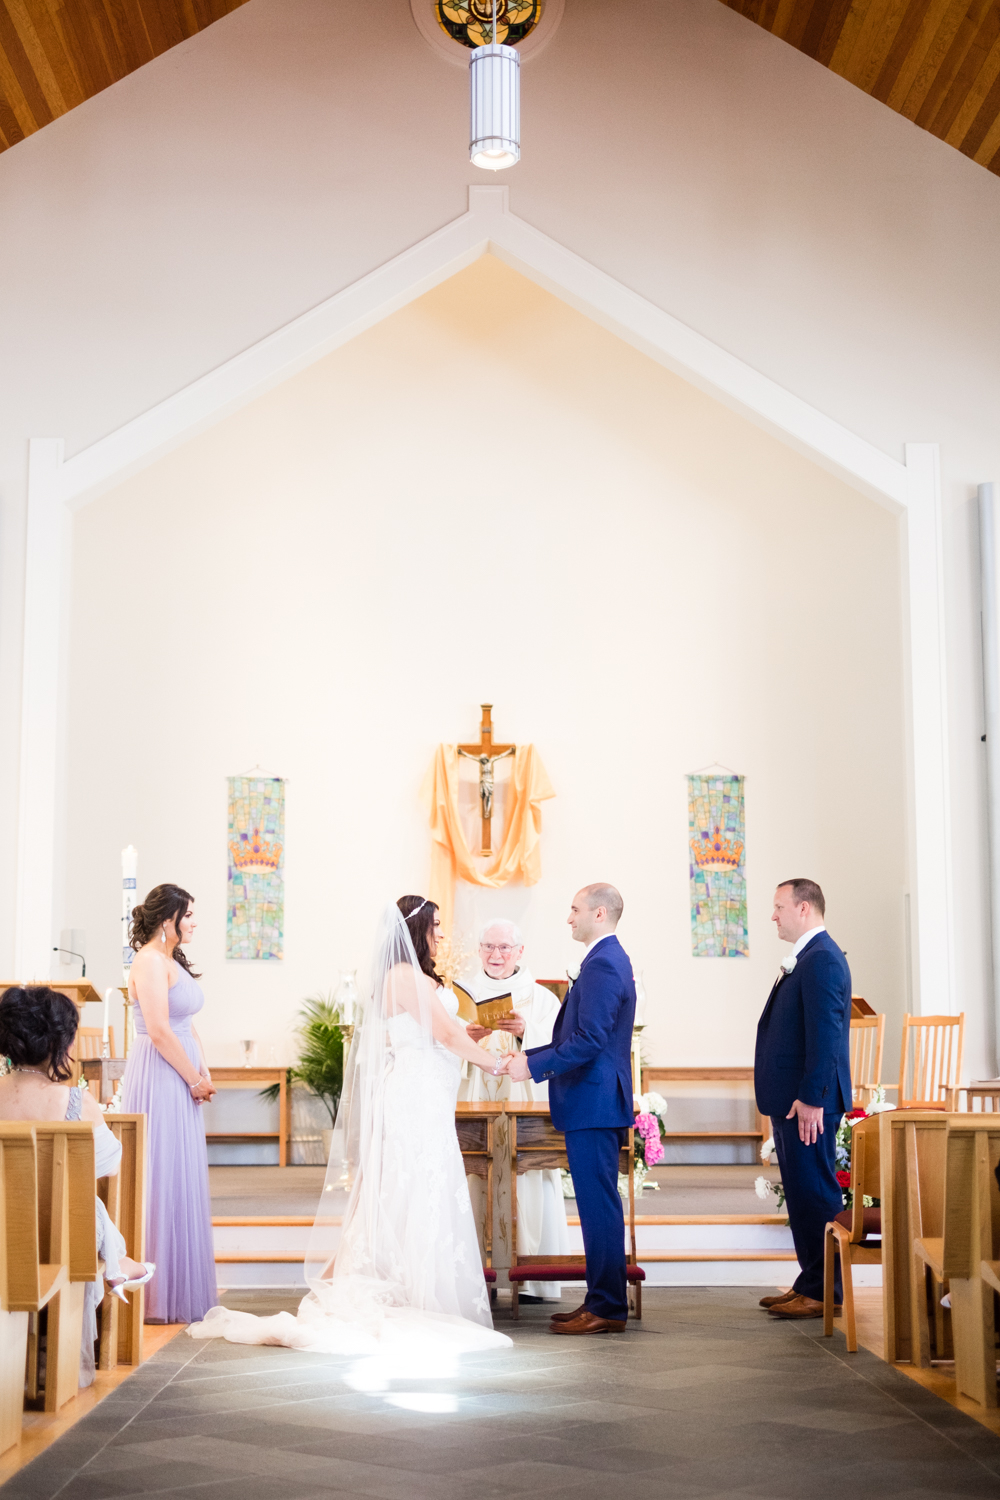 Tiare_Dan_BeeandThistleInn_Connecticut_Wedding-11.jpg